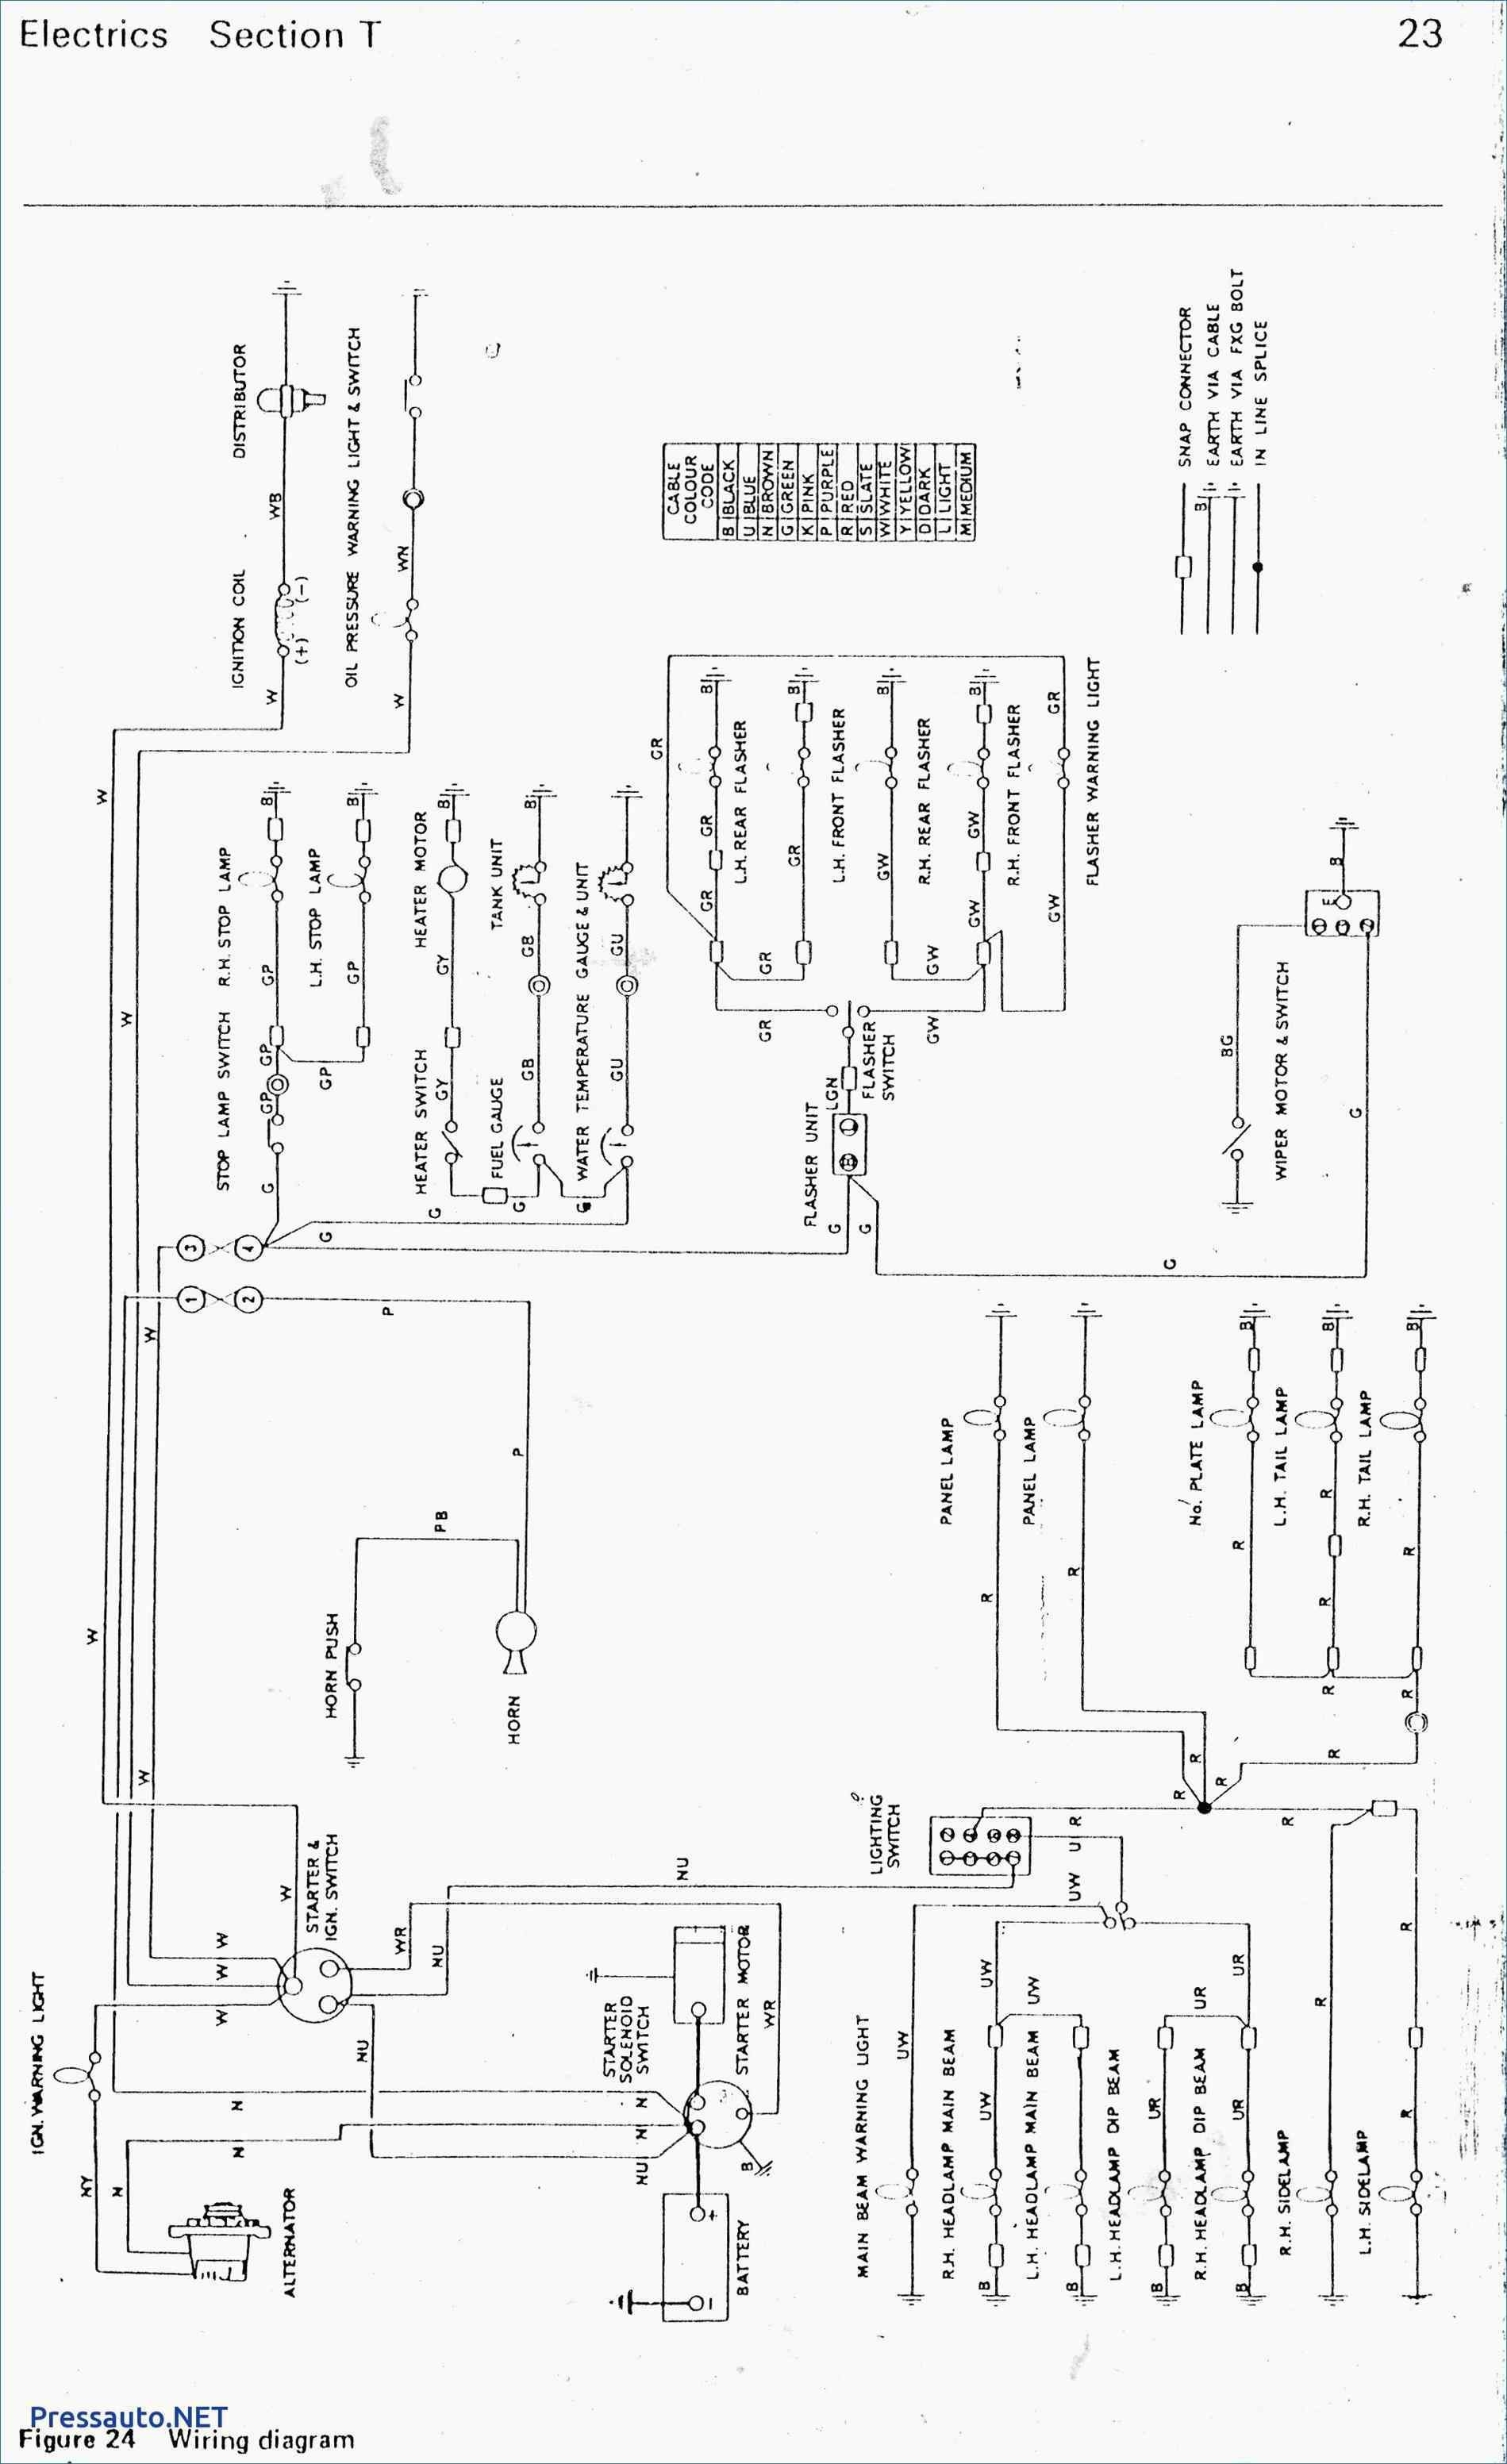 hight resolution of wiring yale schematic fork lift erco3aan wiring diagram paper r amp m hoist wiring diagram